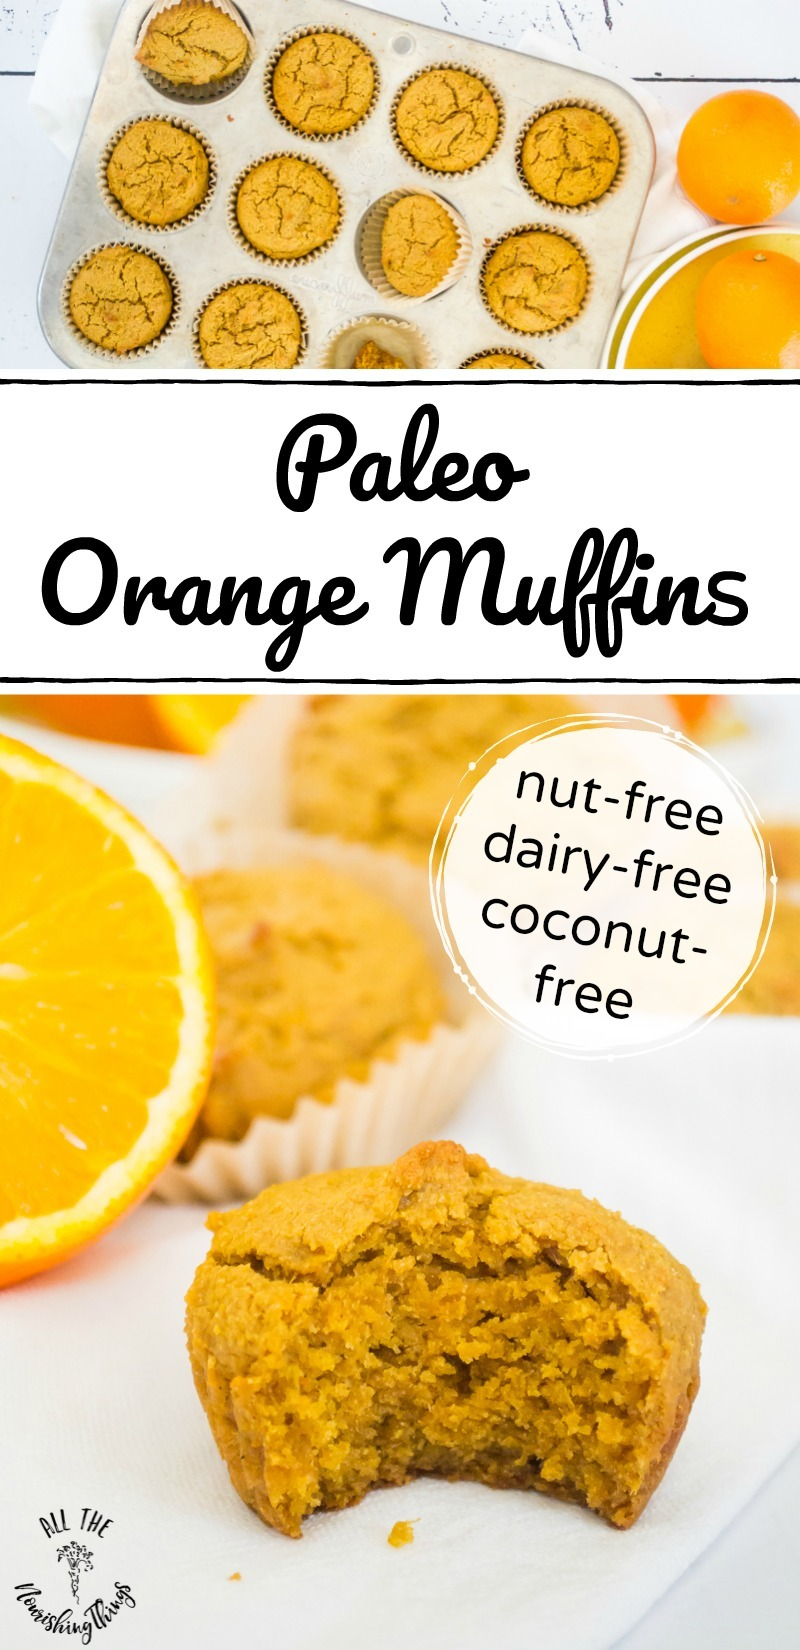 collage of images of paleo orange muffins with text overlay